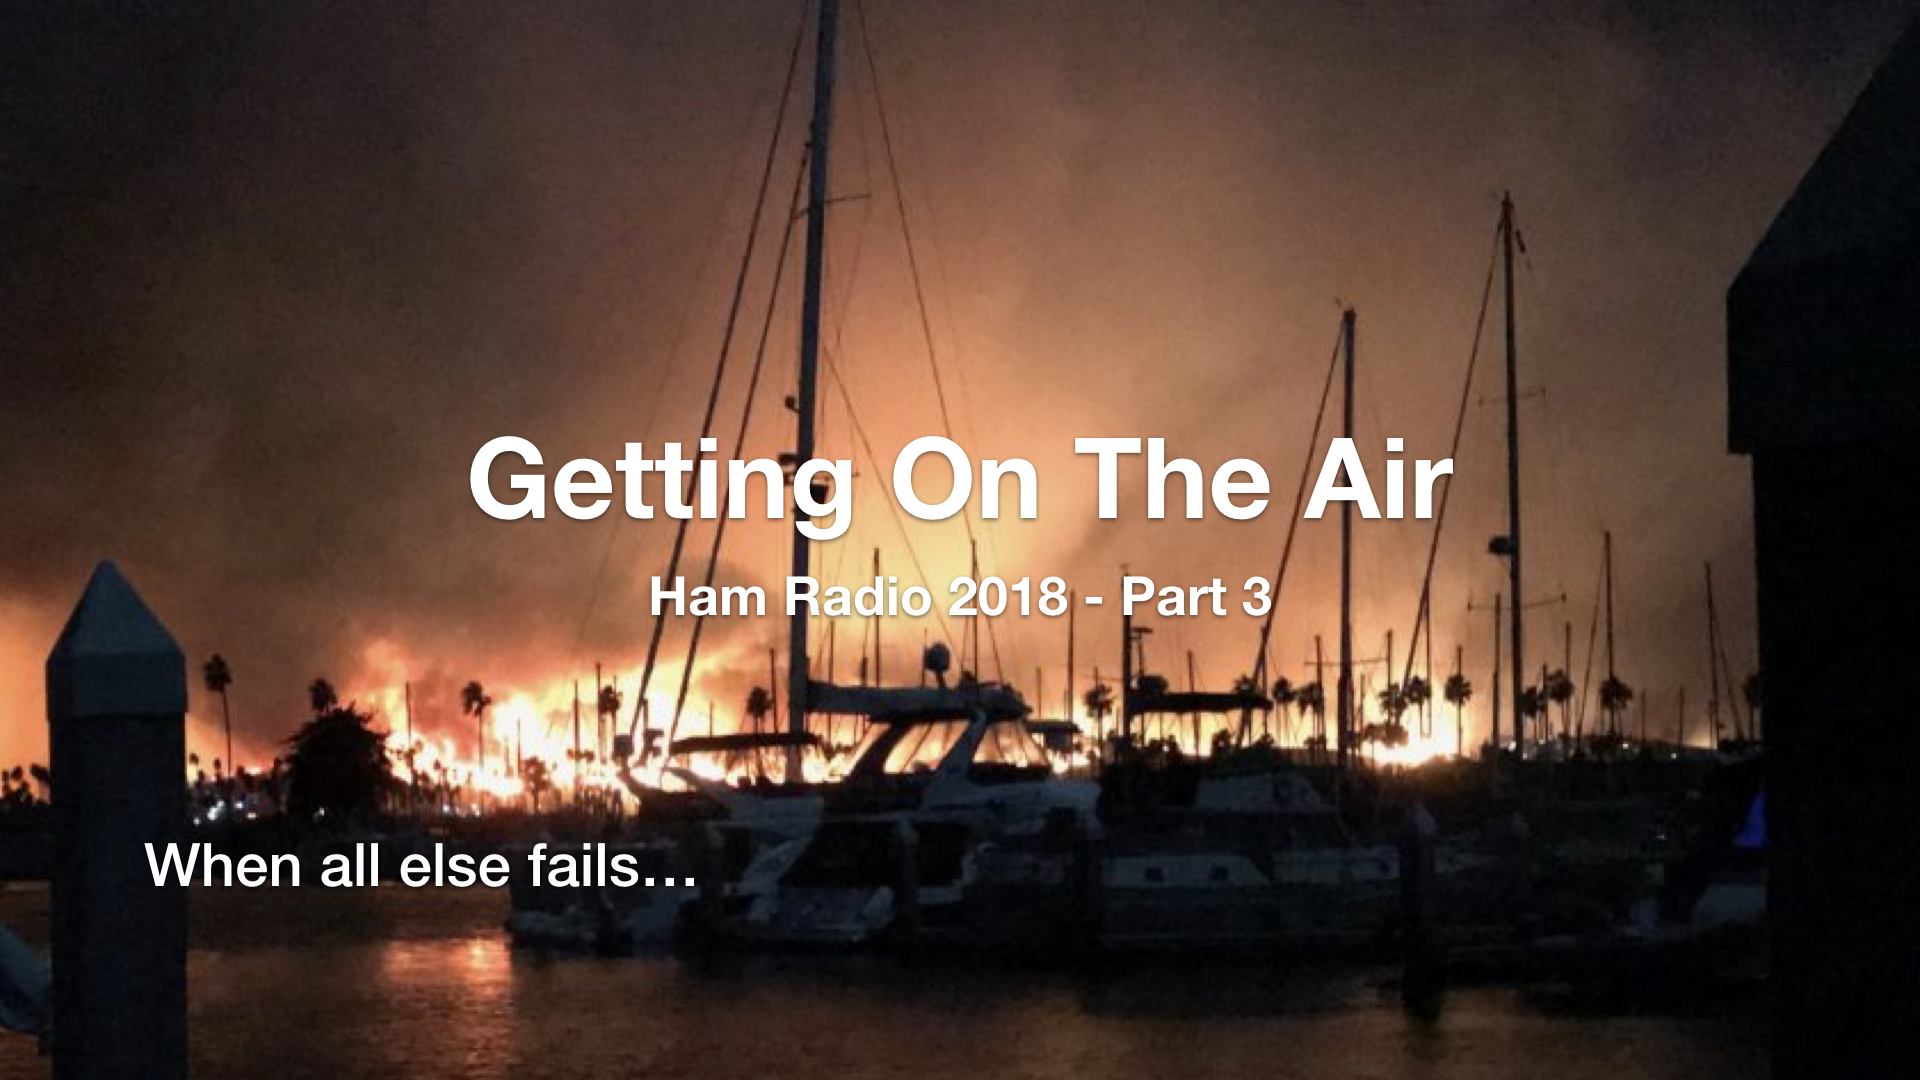 Thomas Fire burns the hillsides of Ventura California with boats floating in the harbor at night. Text - Getting on the Air, Ham Radio 2018 - Part 3. When all else fails...